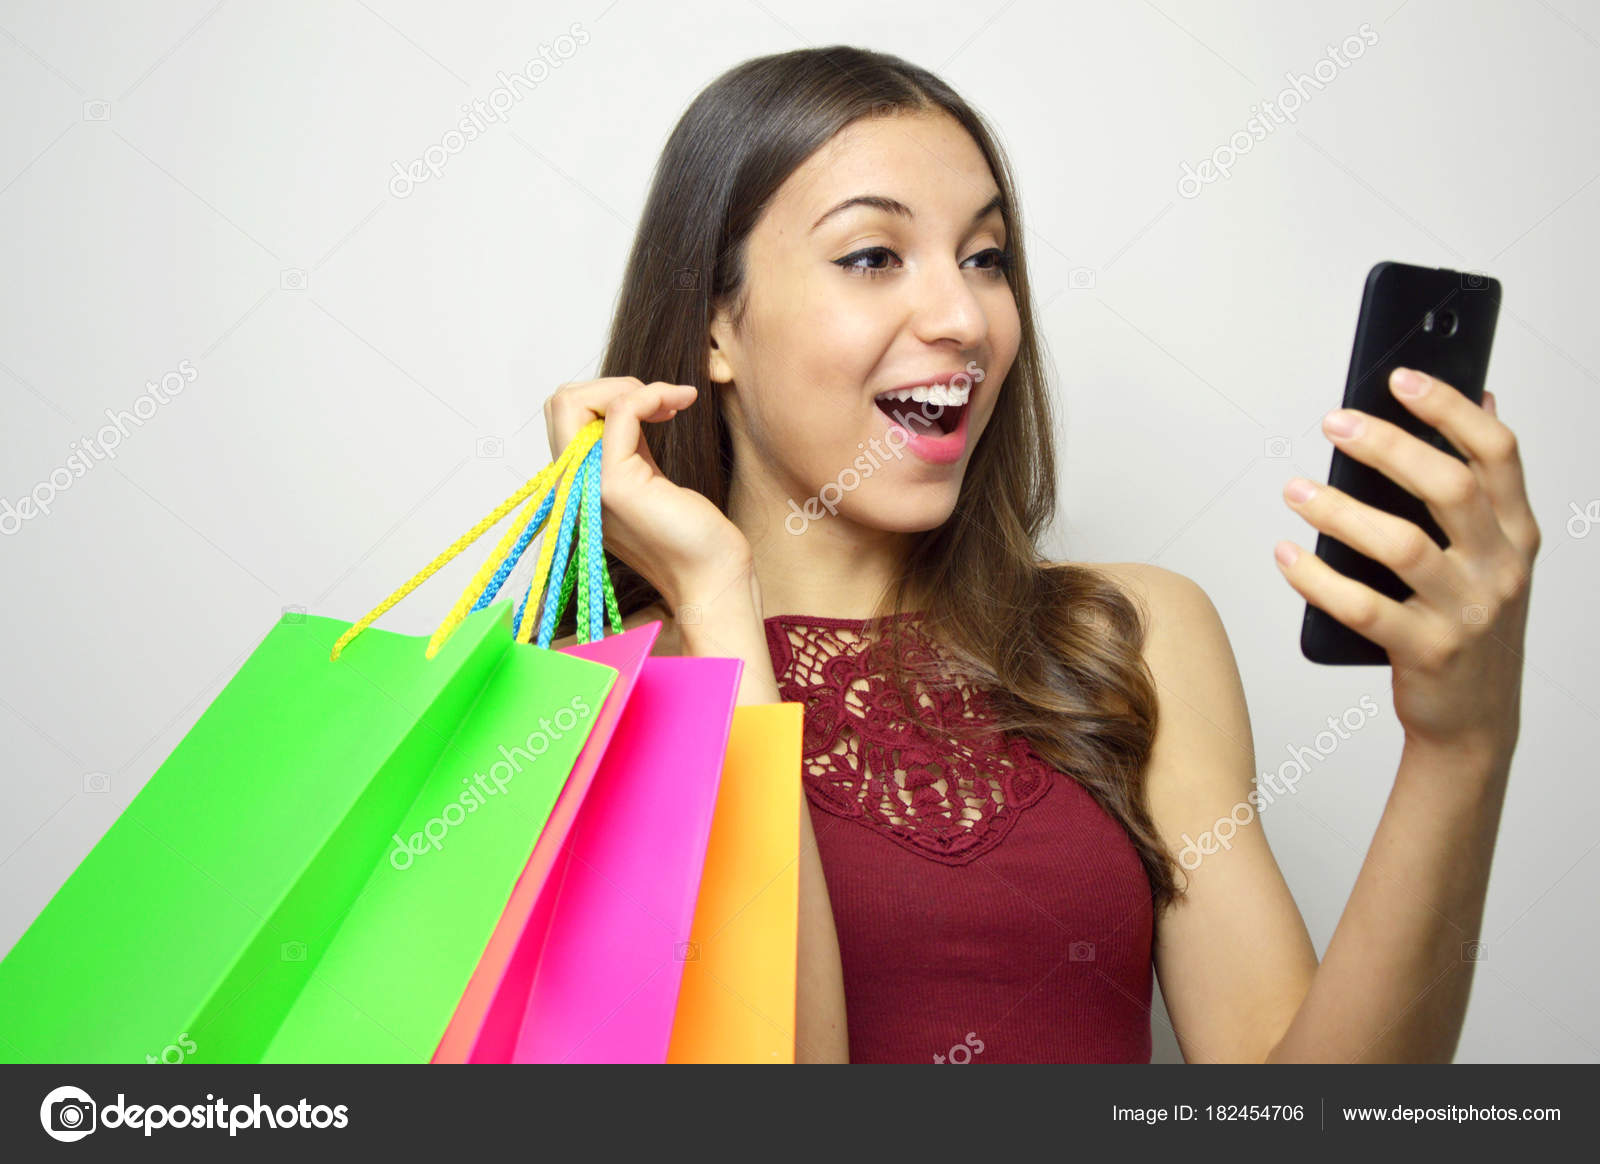 9ec42fd918e9d Attractive woman with smart phone and shopper bags in her hands looking to  the side at your brand or product on white background. Copy space.